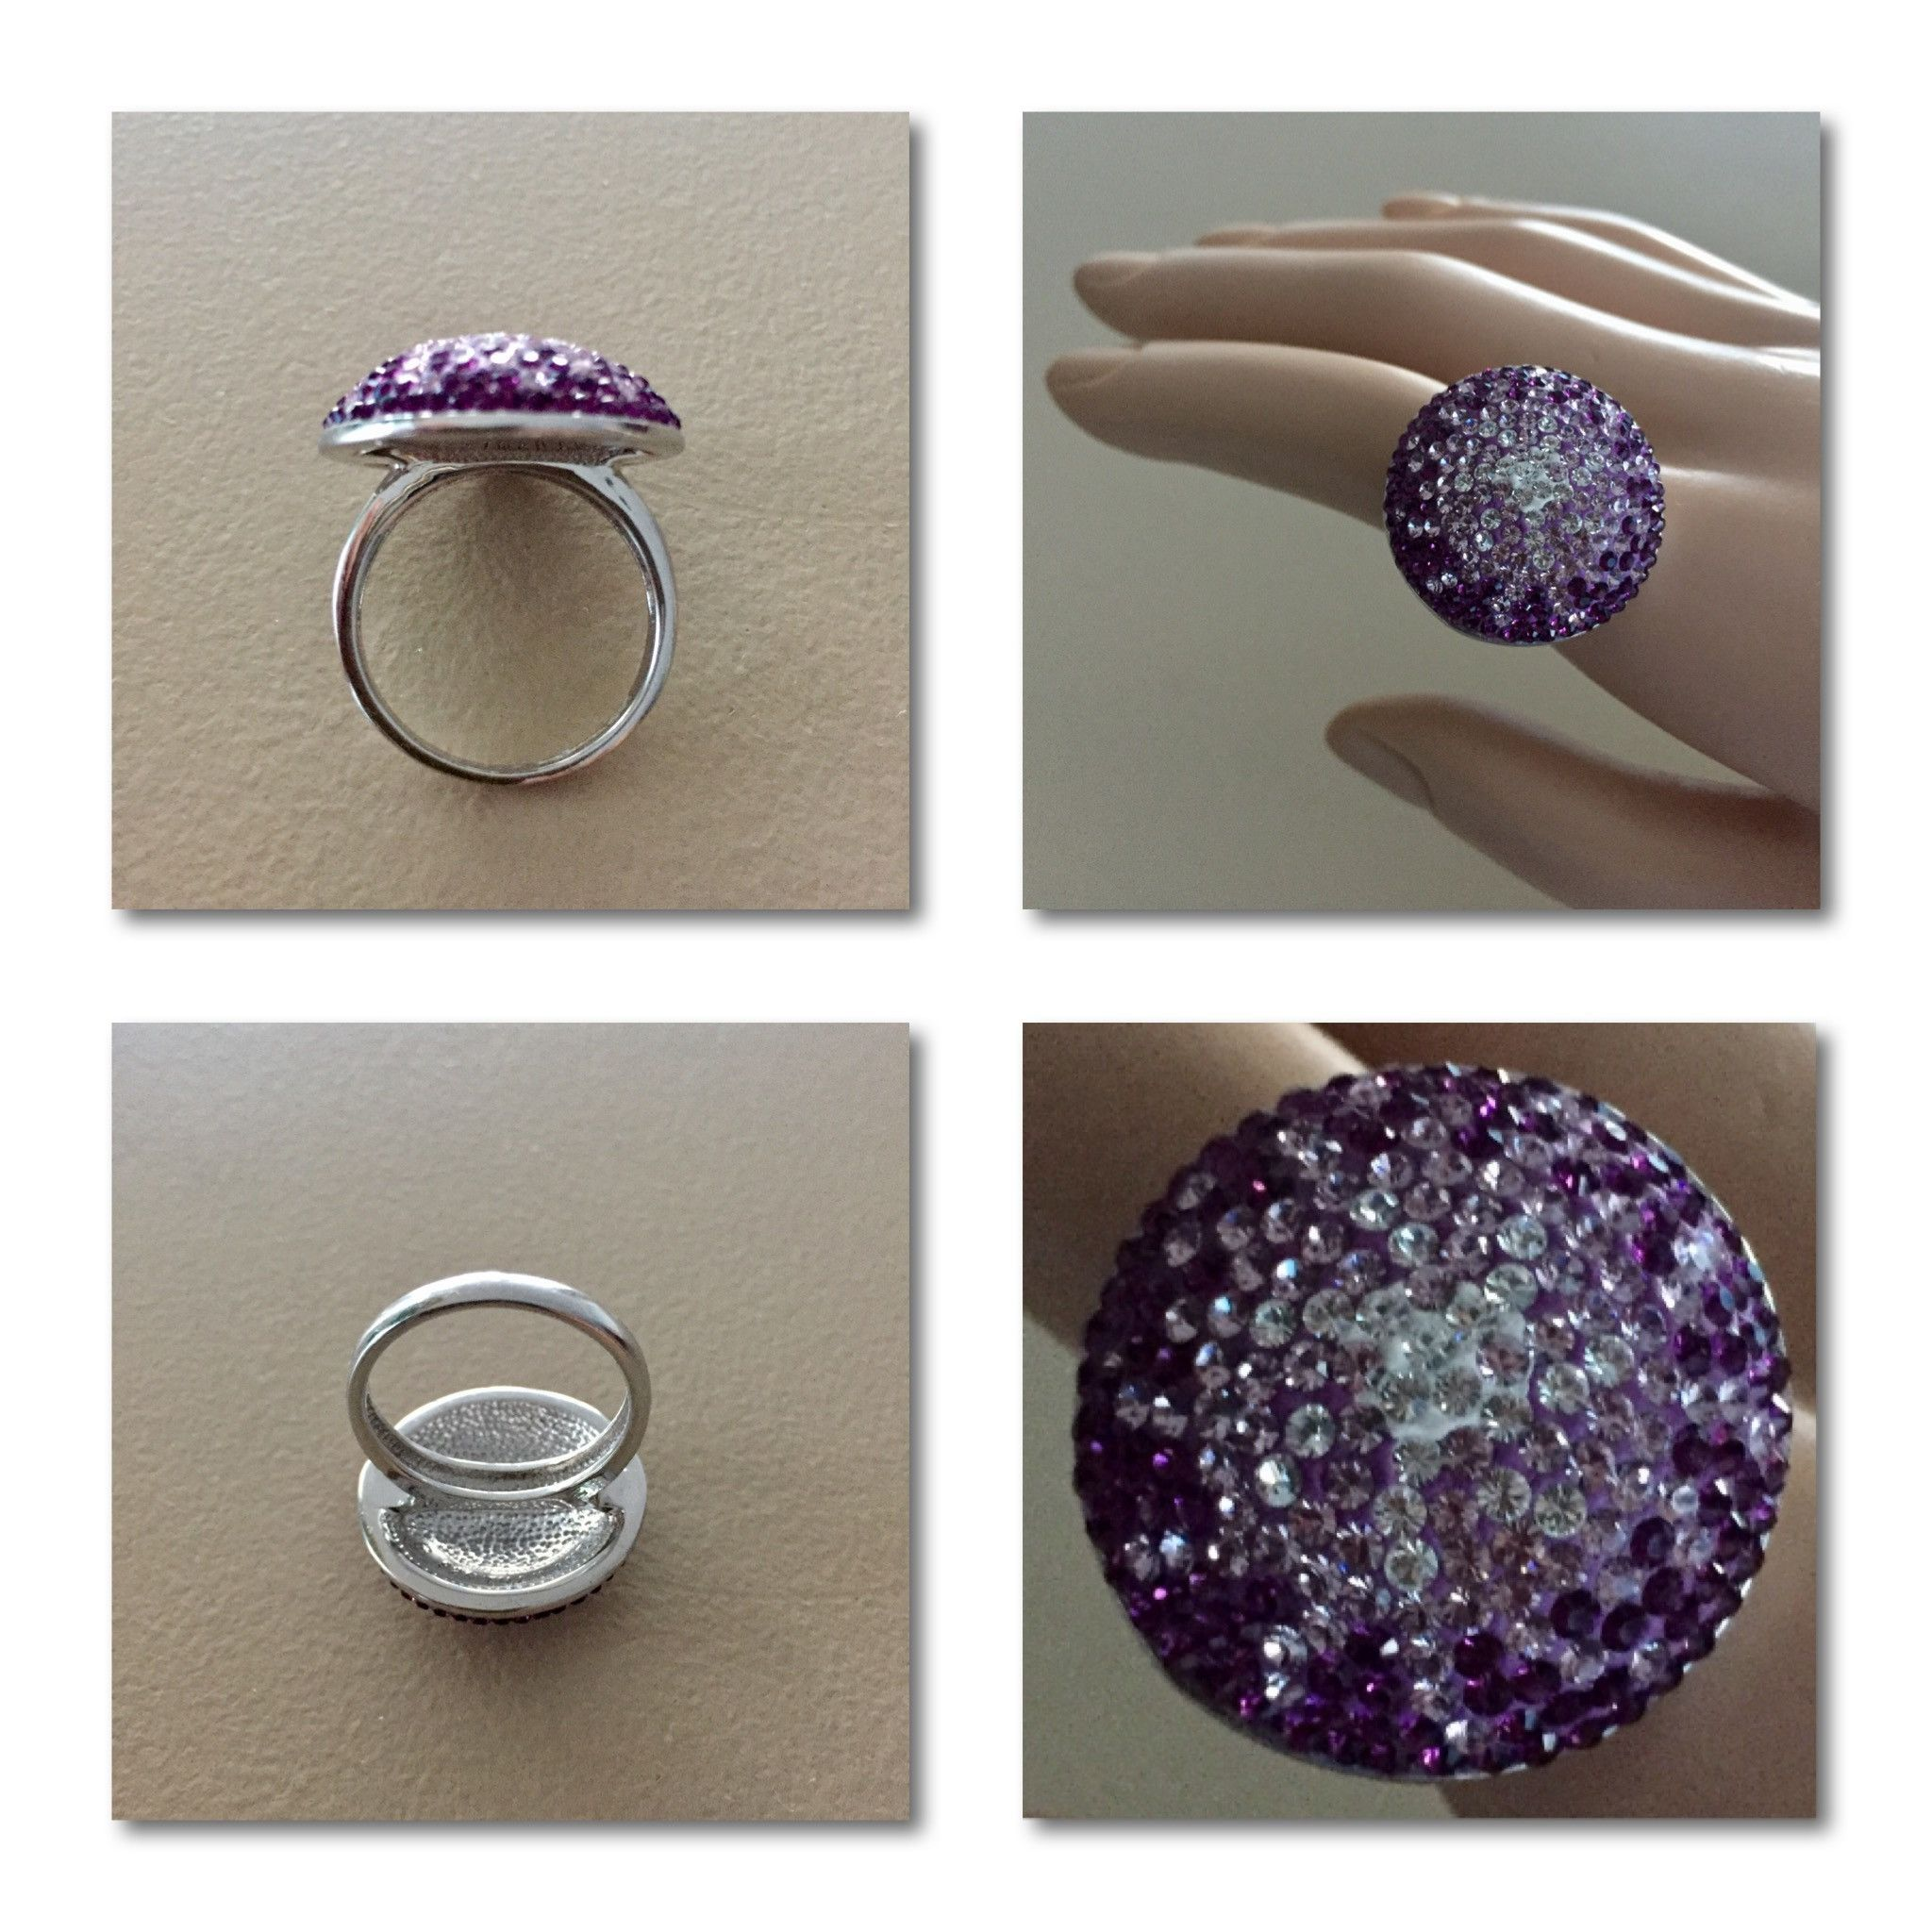 Starburst Design Crystal Cluster Cocktail Ring